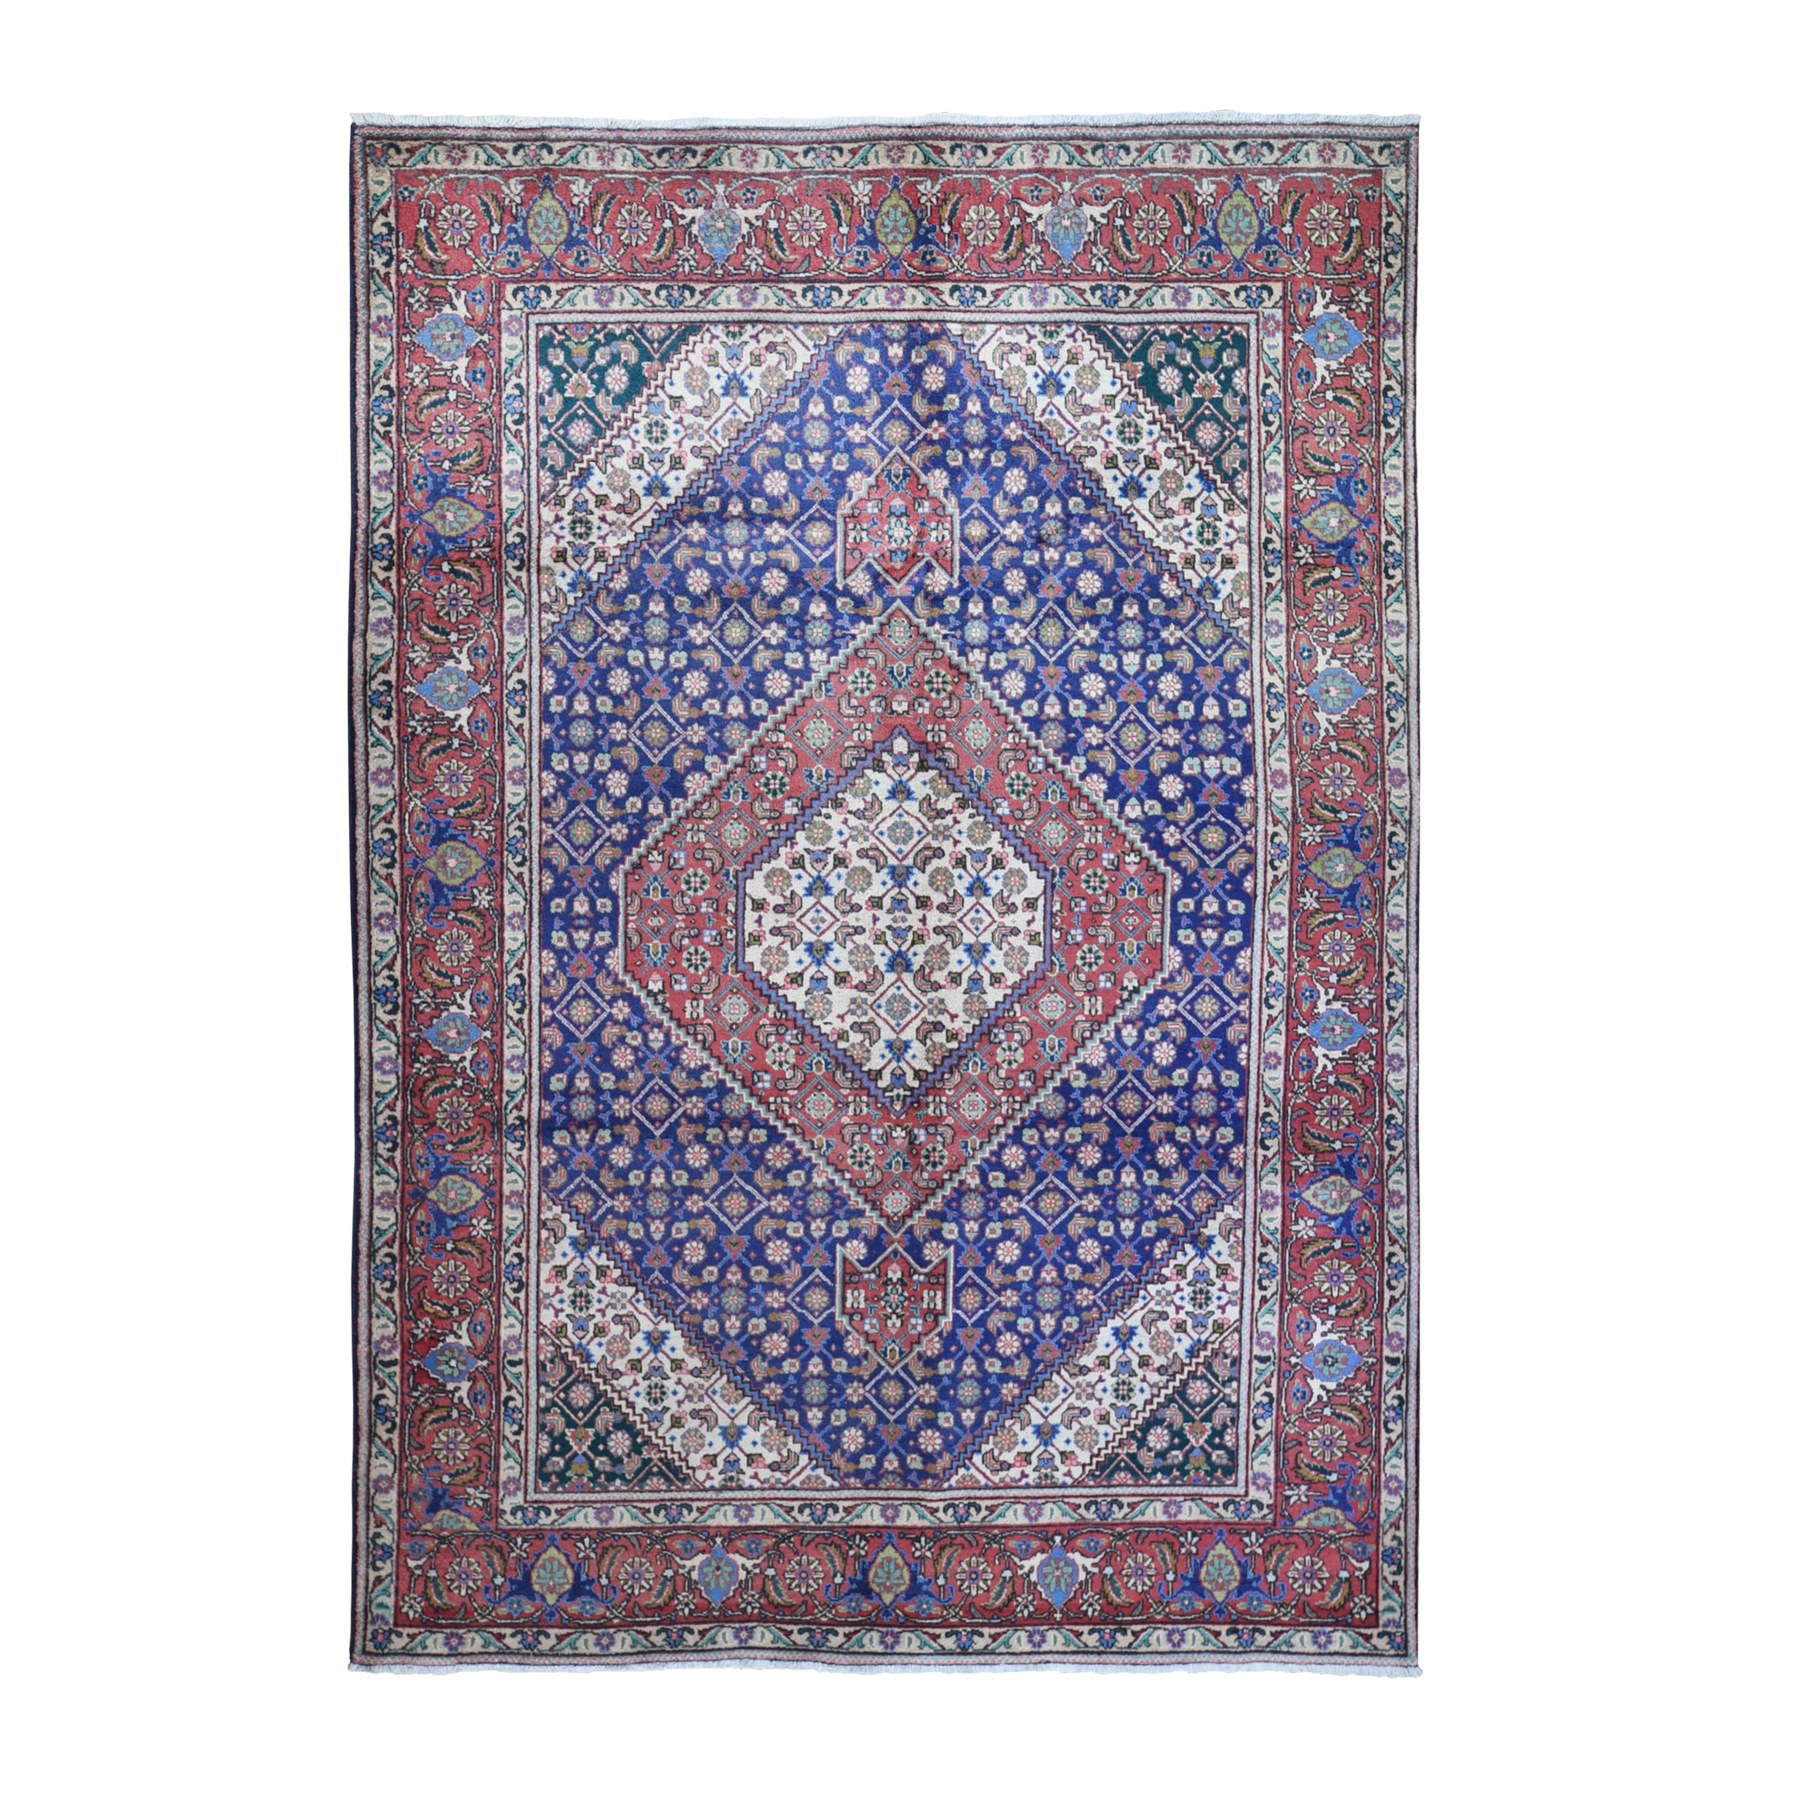 "6'7""x9'6"" Blue Vintage Persian Tabriz Fish Mahi Design Natural Wool Excellent Condition Hand Woven Oriental Rug"